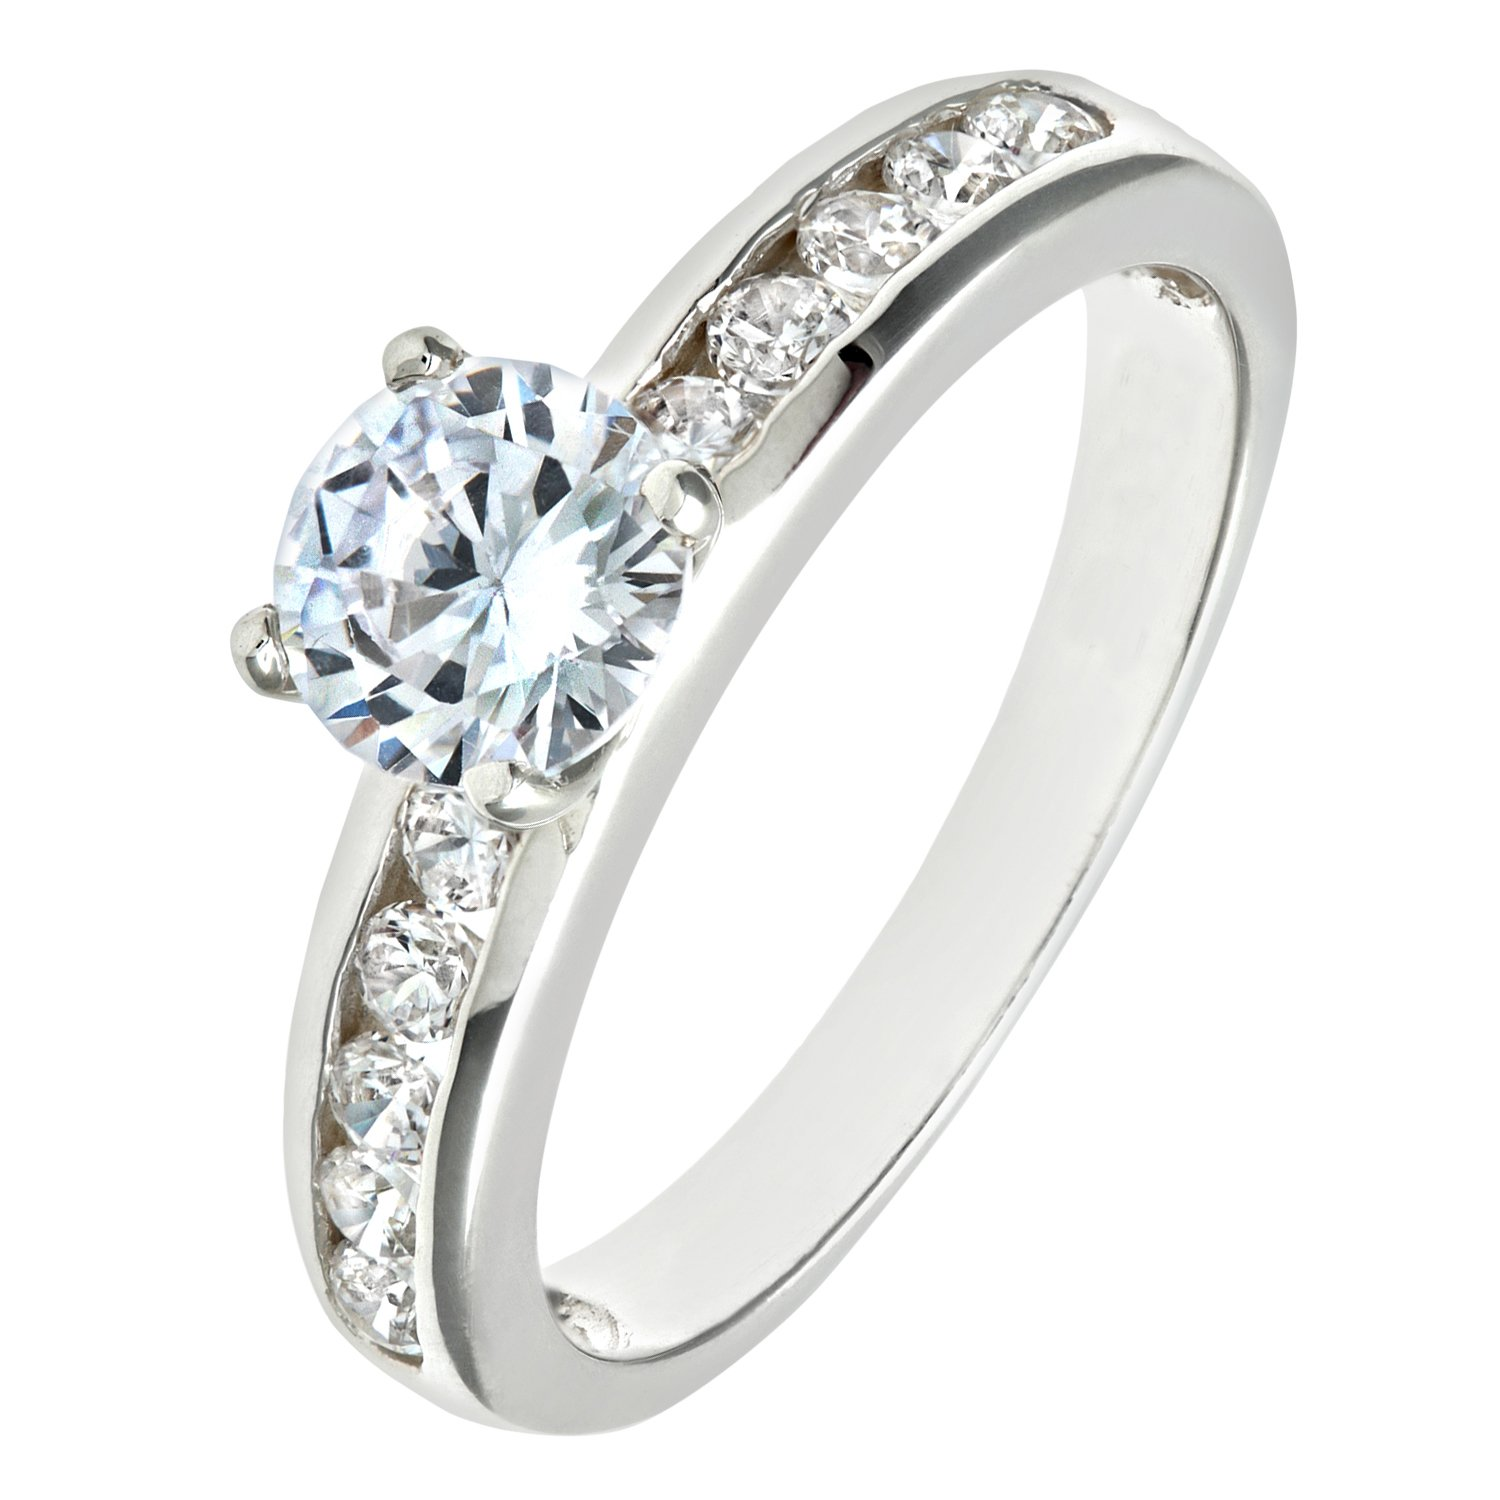 Citerna Silver Cz Engagement Ring with Cz shoulders